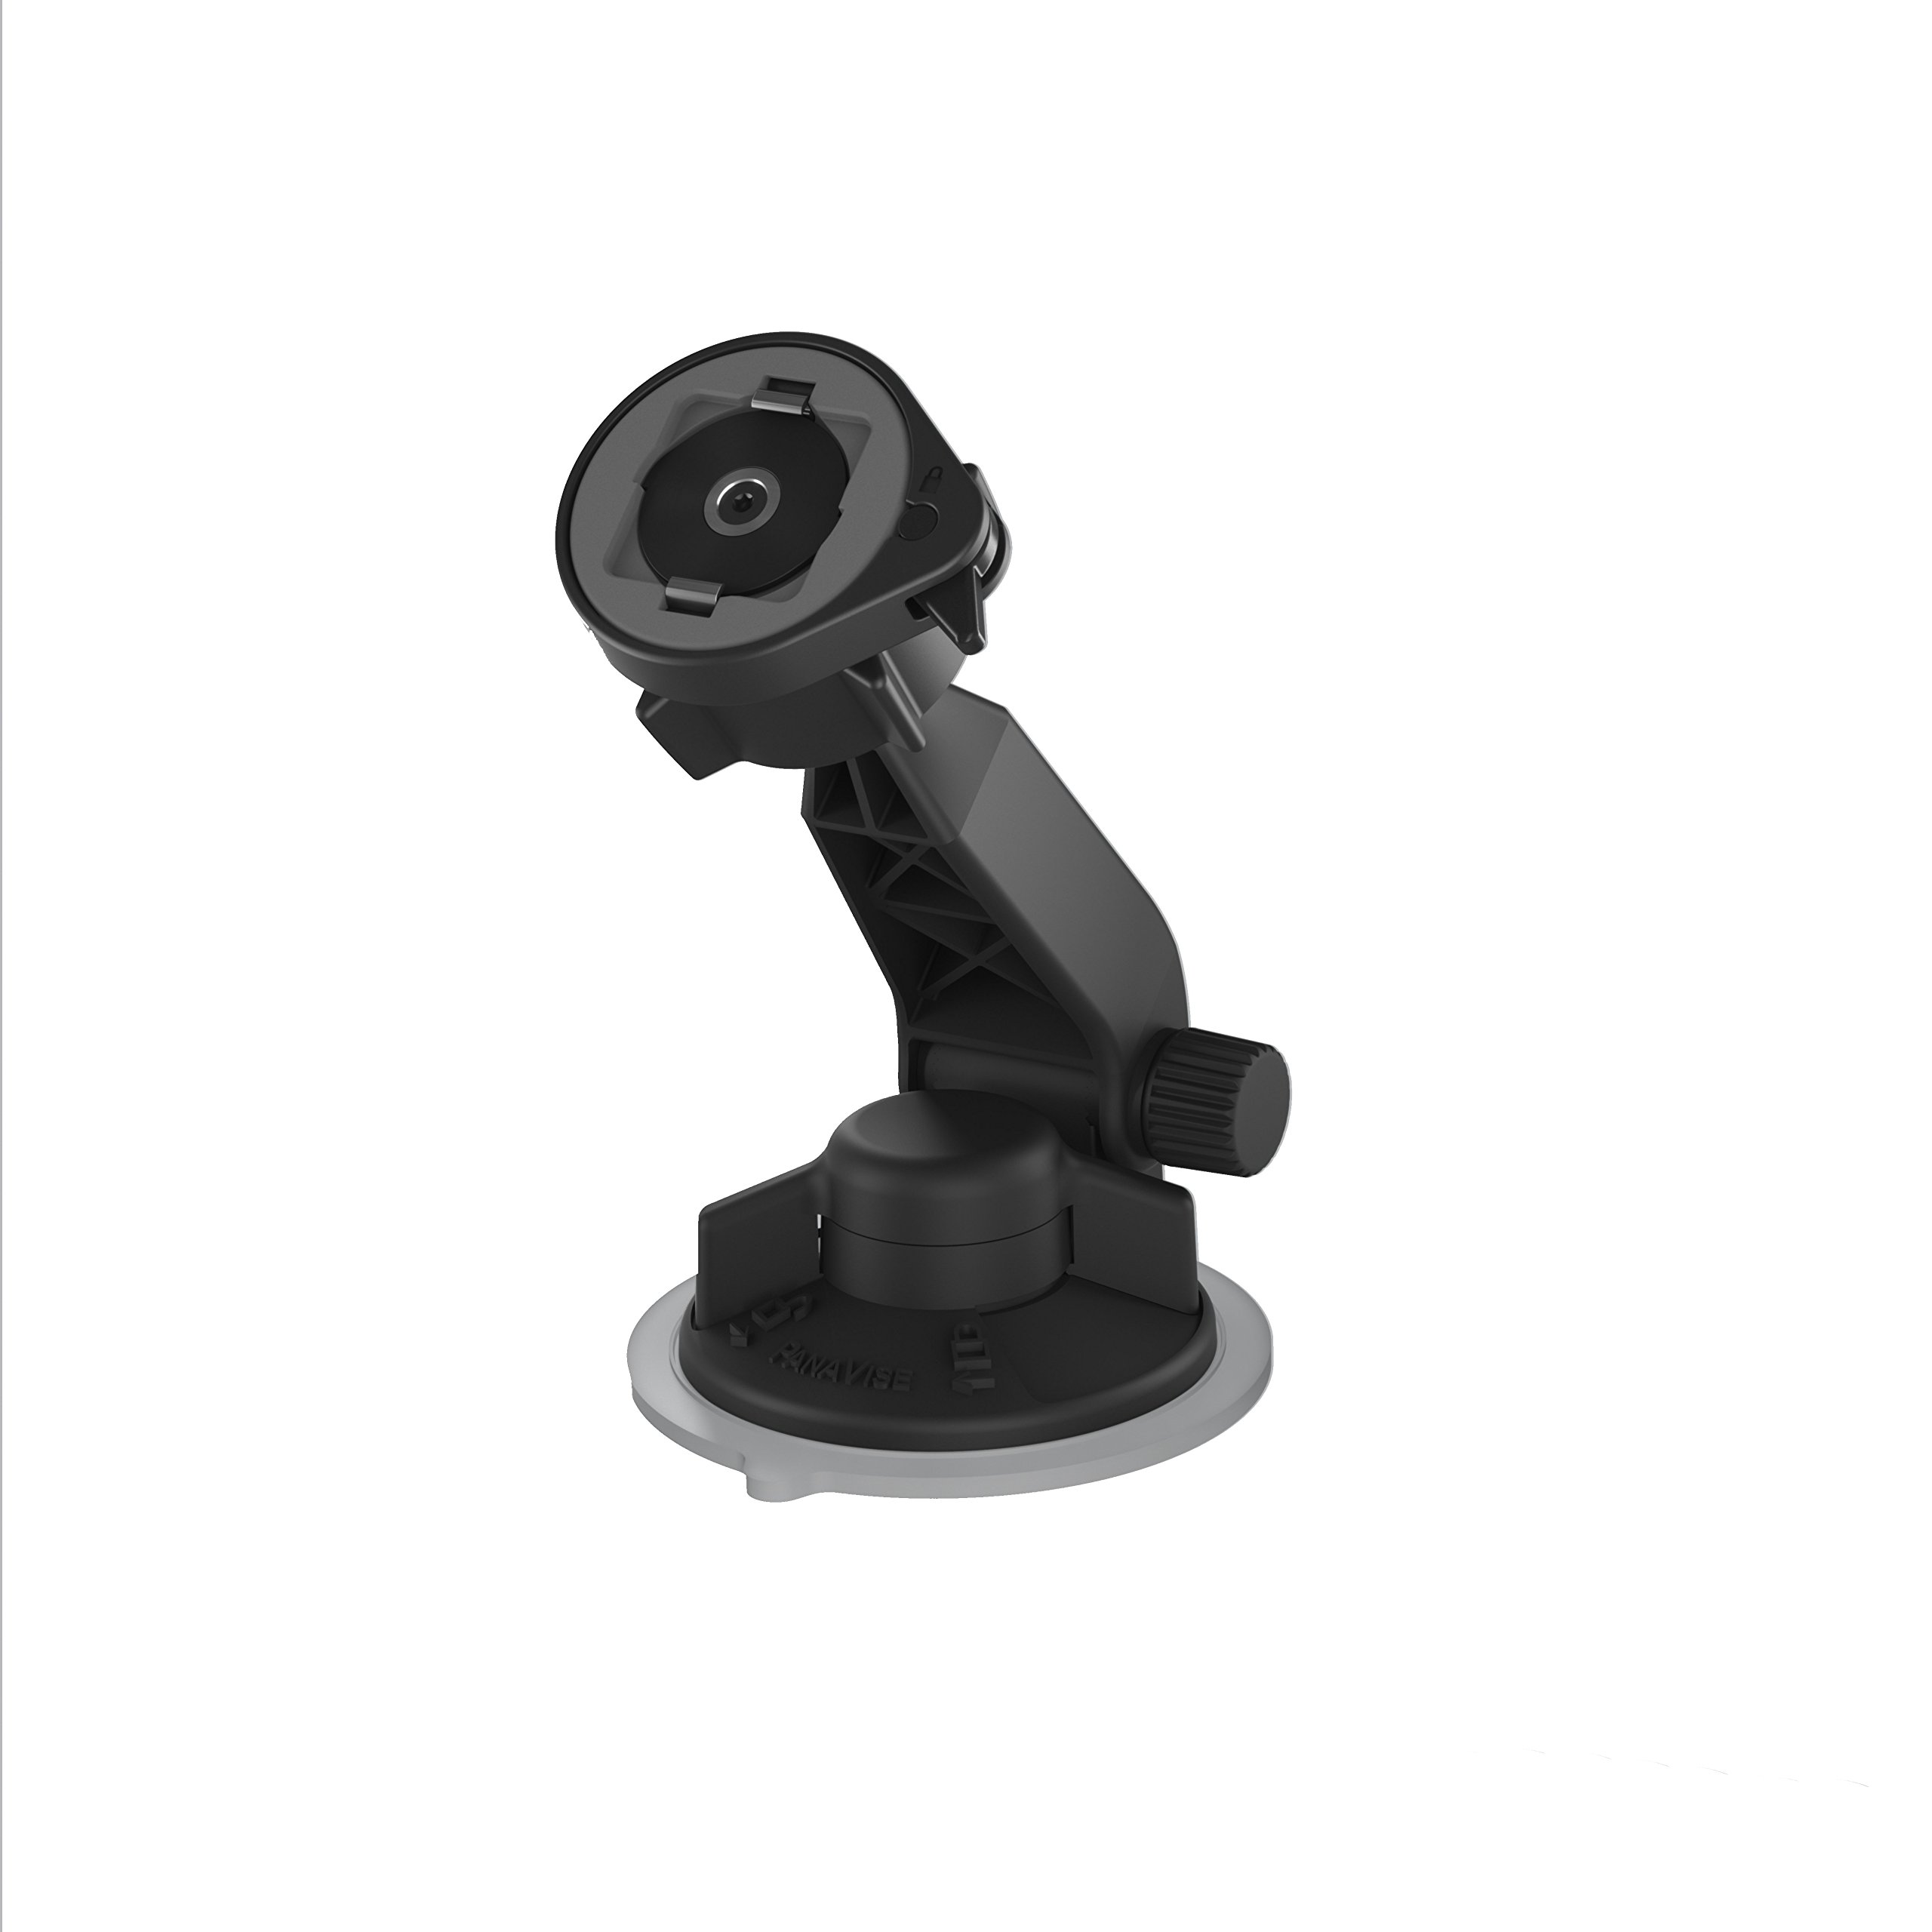 LIFEACTIV SUCTION MOUNT WITH QUICKMOUNT